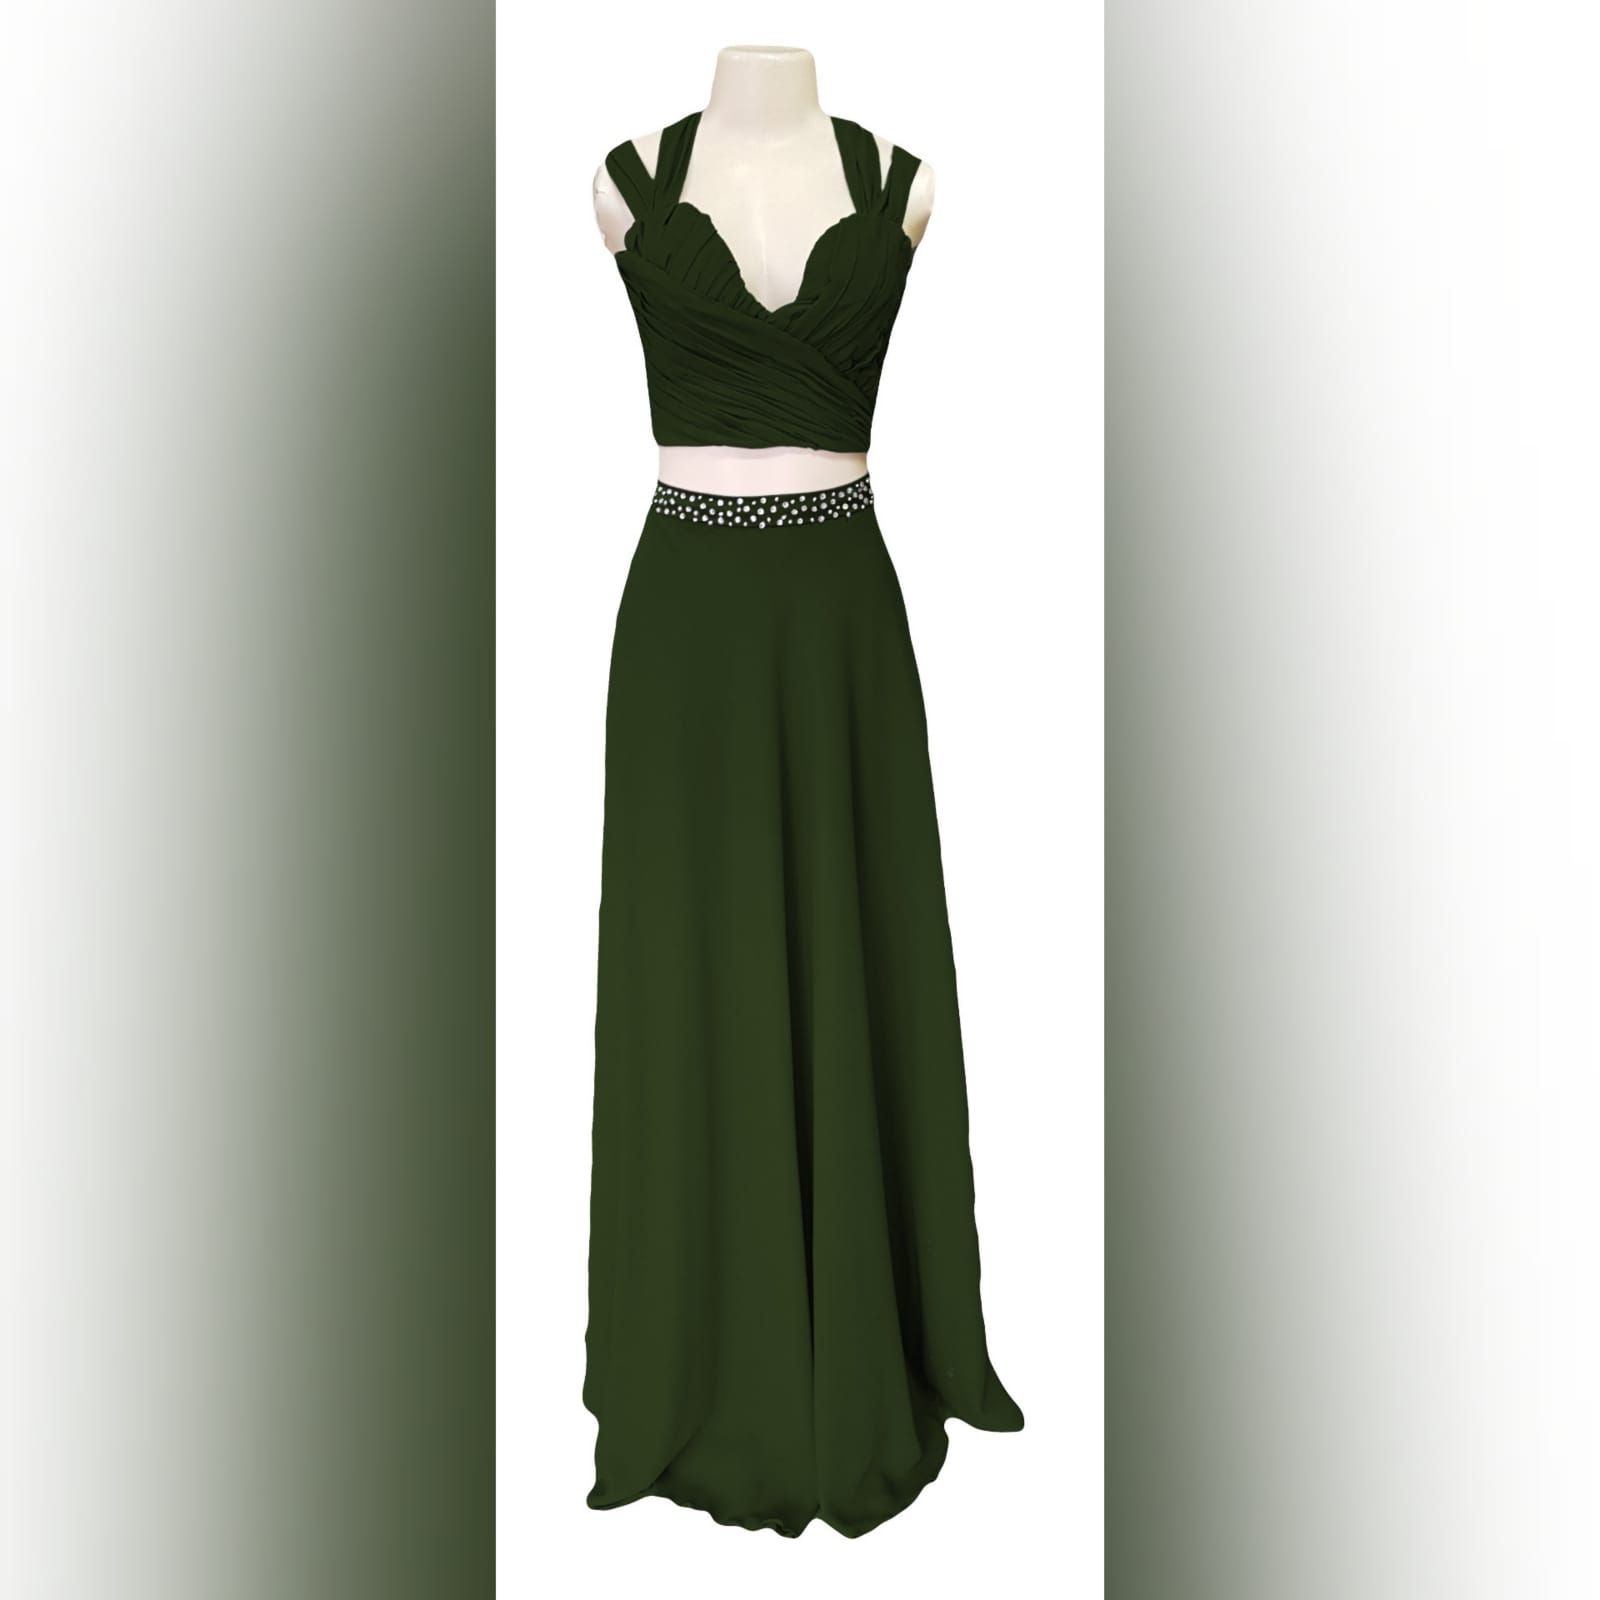 Olive green 2 piece prom dress 3 olive green 2 piece prom dress. Flowy long chiffon shirt with a little train and waistband detailed with silver beads. Pleated crop top with a rounded deep neckline , backless design with strap detail.